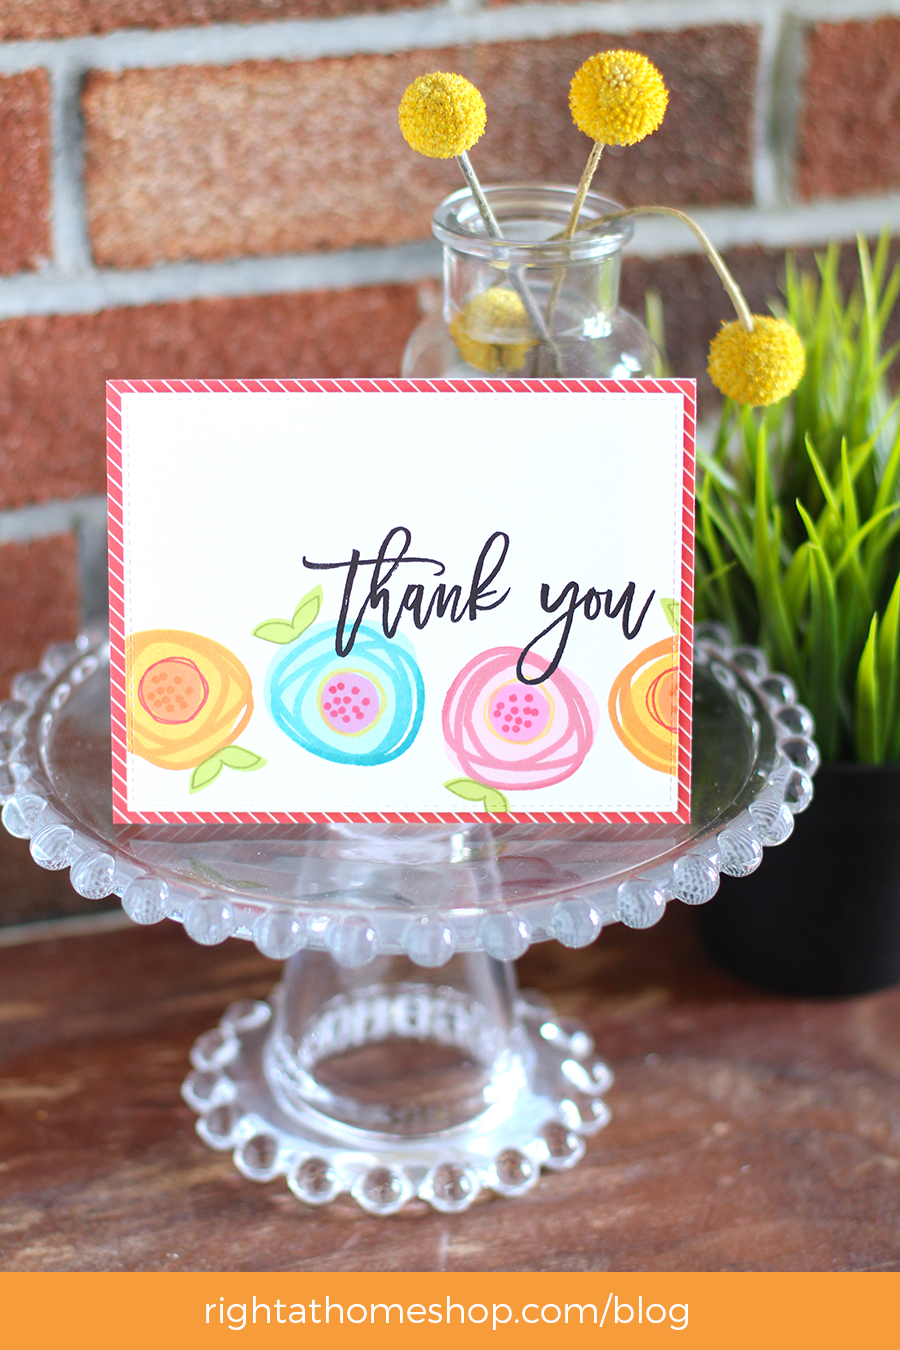 Thank You Card Using March Release // Right at Home Stamps - rightathomeshop.com/blog